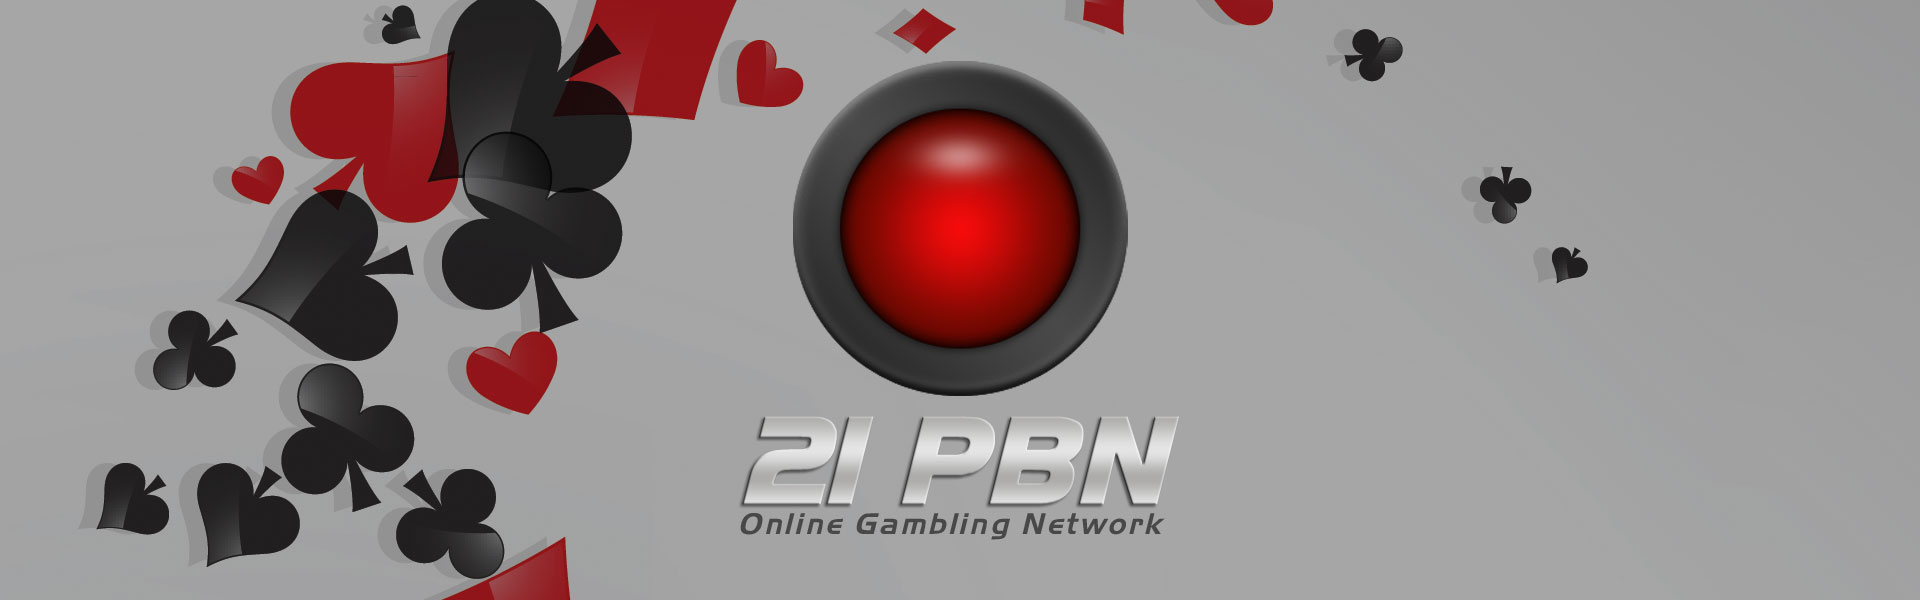 21 casino pbns with sticky accepted in cheap rates